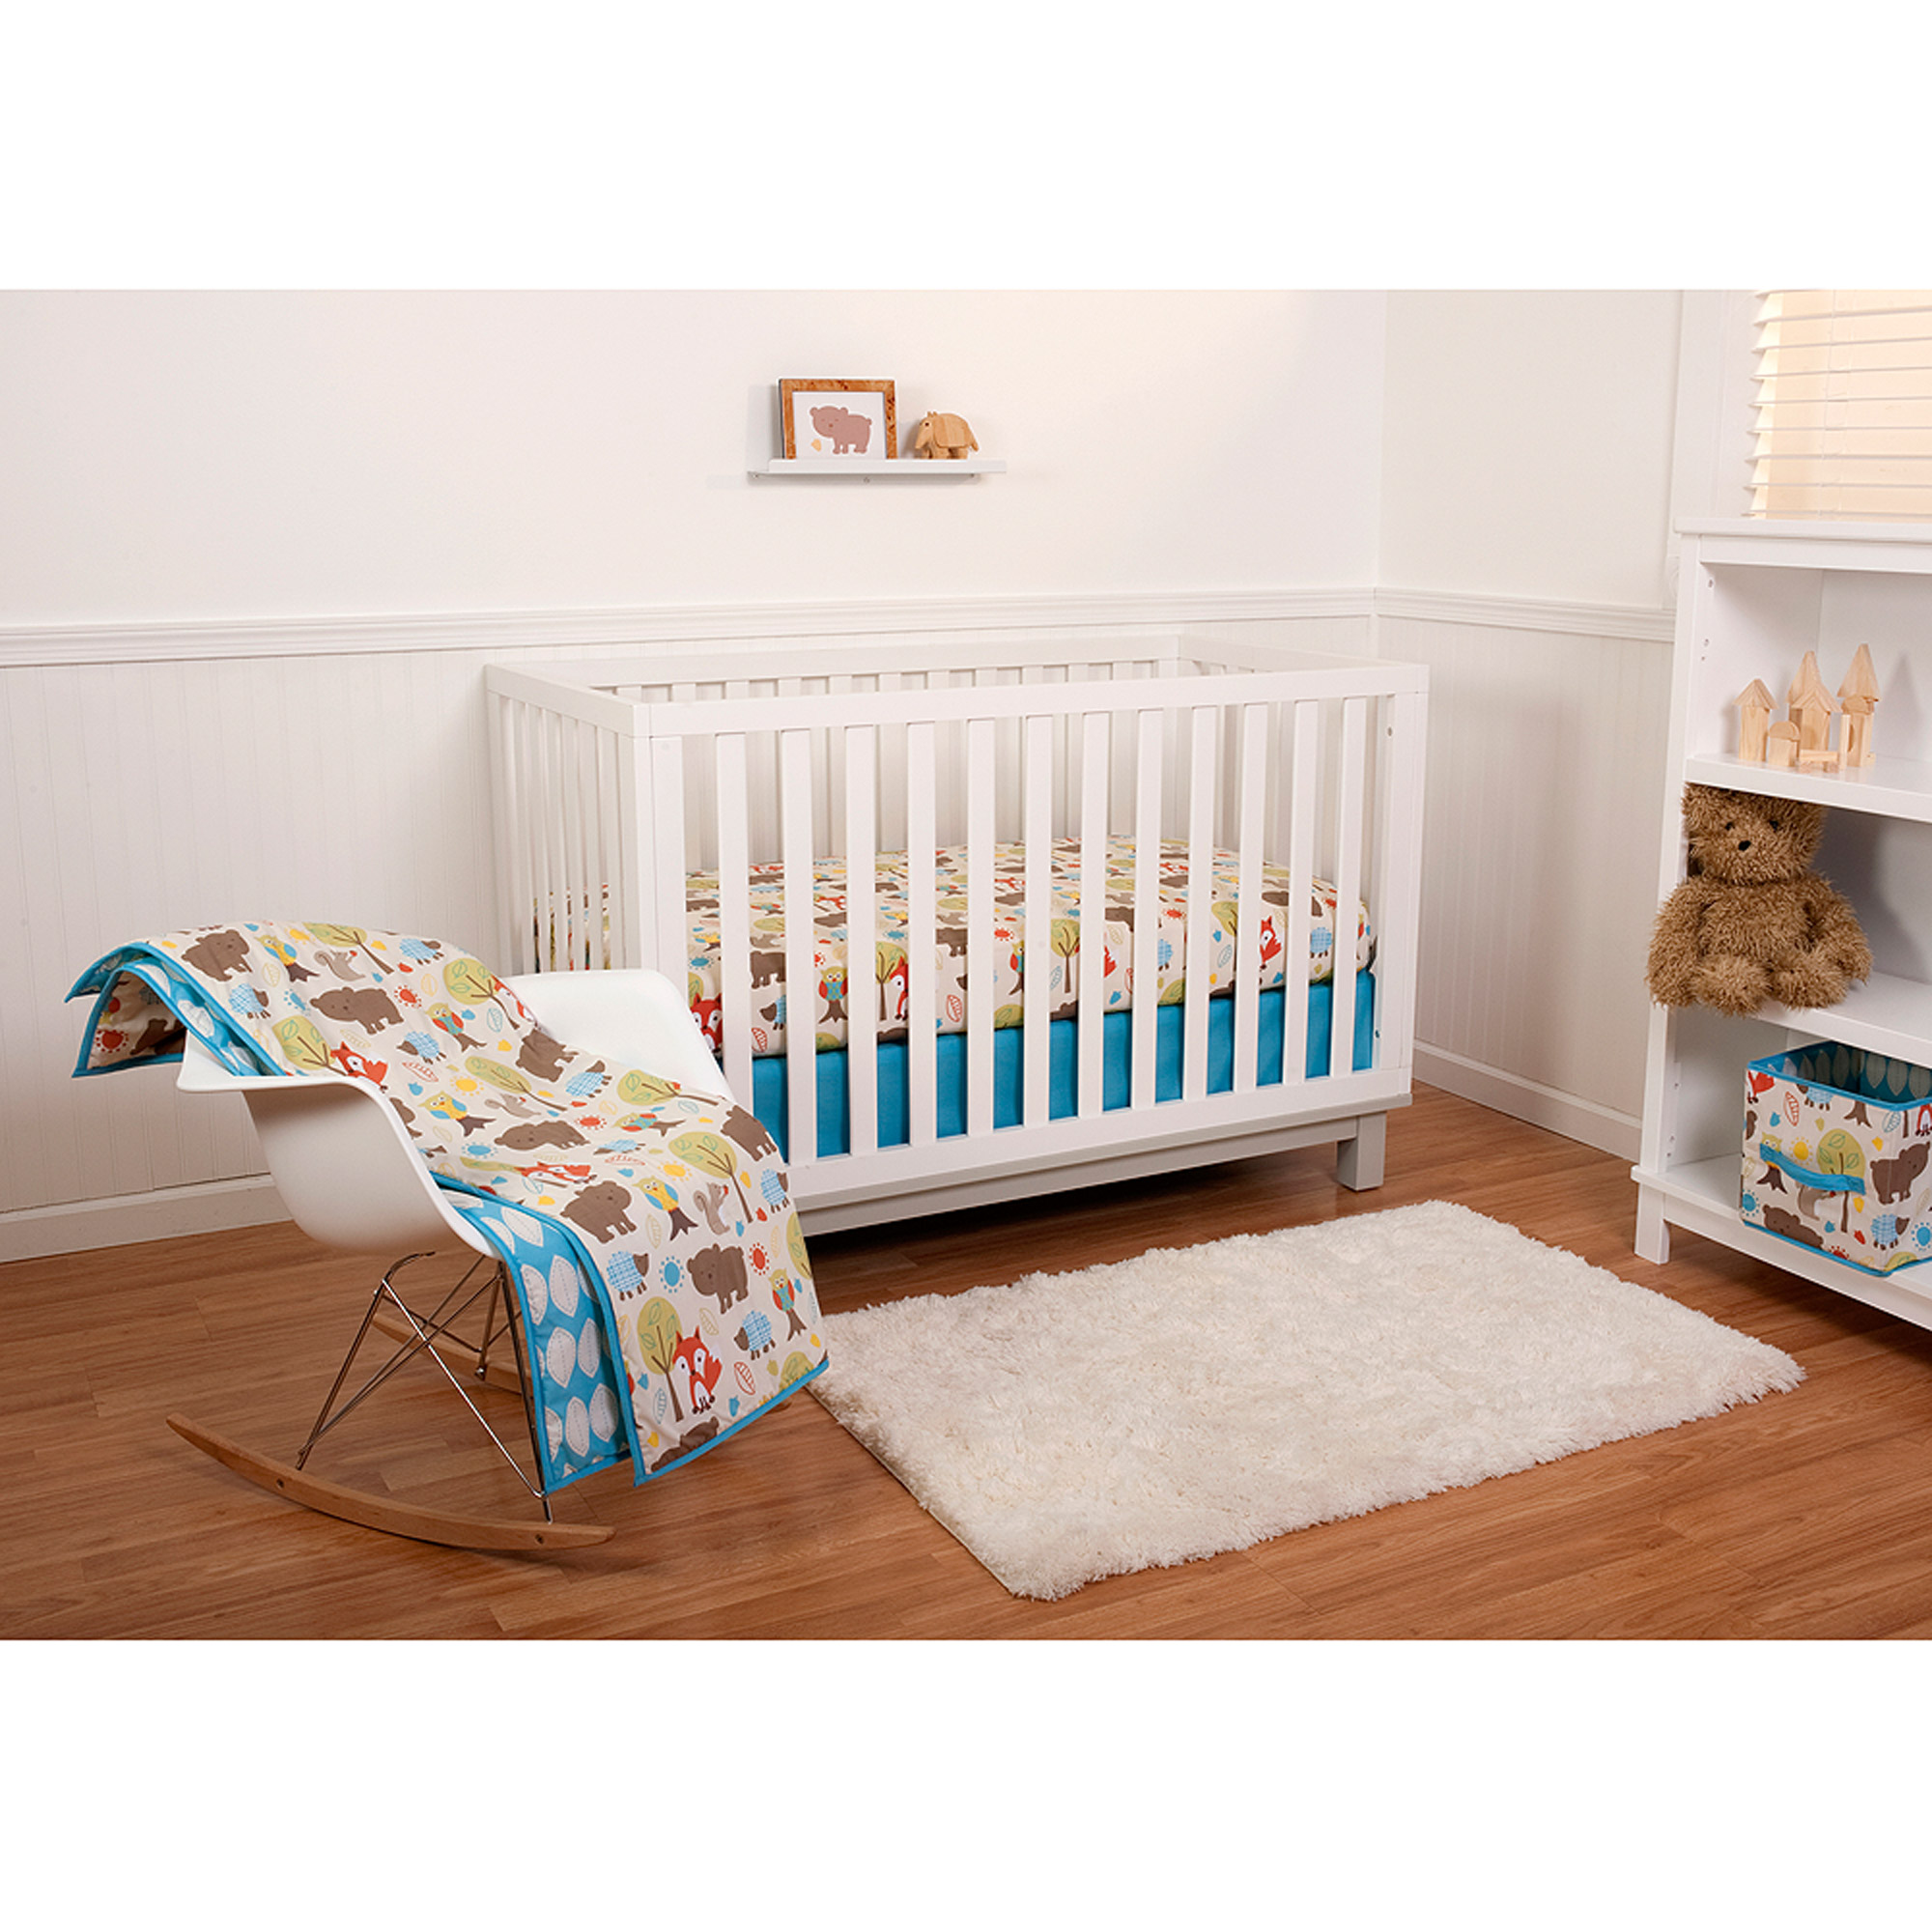 Moose 6 Piece Crib Set Little Bedding by Nojo...